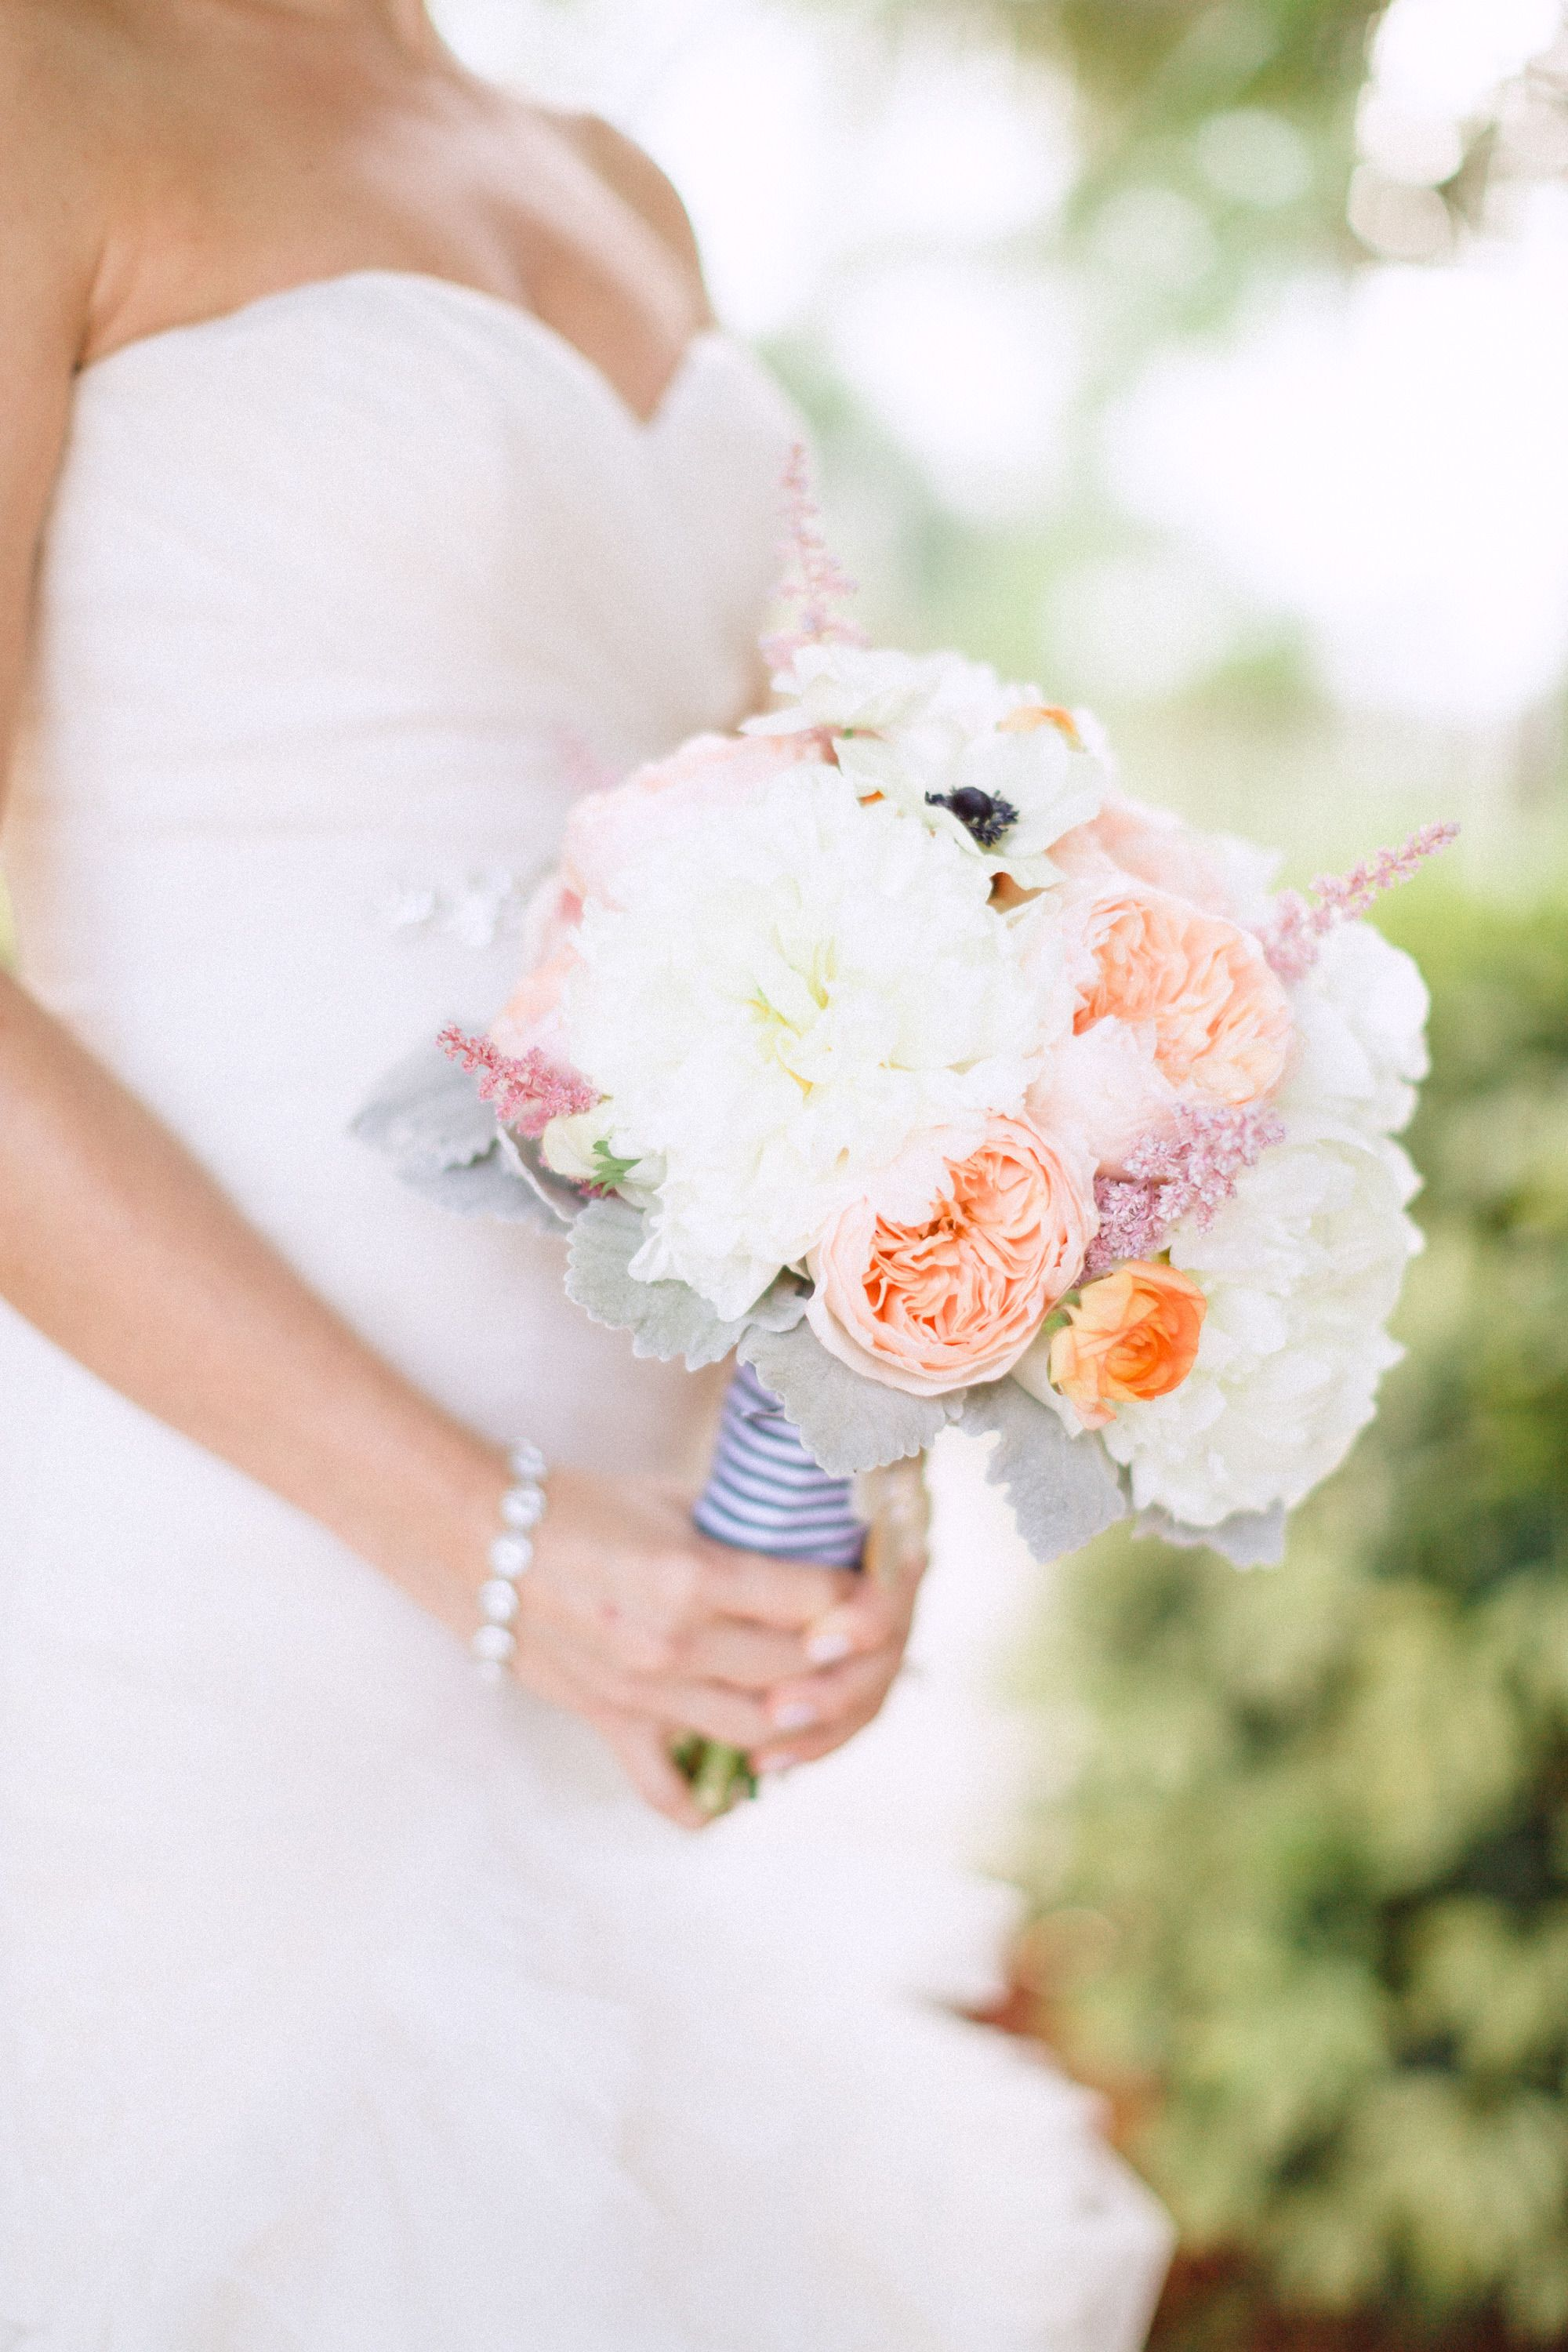 Southern bouquet | Photography: Hunter Ryan Photo - hunterryanphoto.com  Read More: http://www.stylemepretty.com/southeast-weddings/2014/04/28/romantic-southern-affair-in-fort-myers/